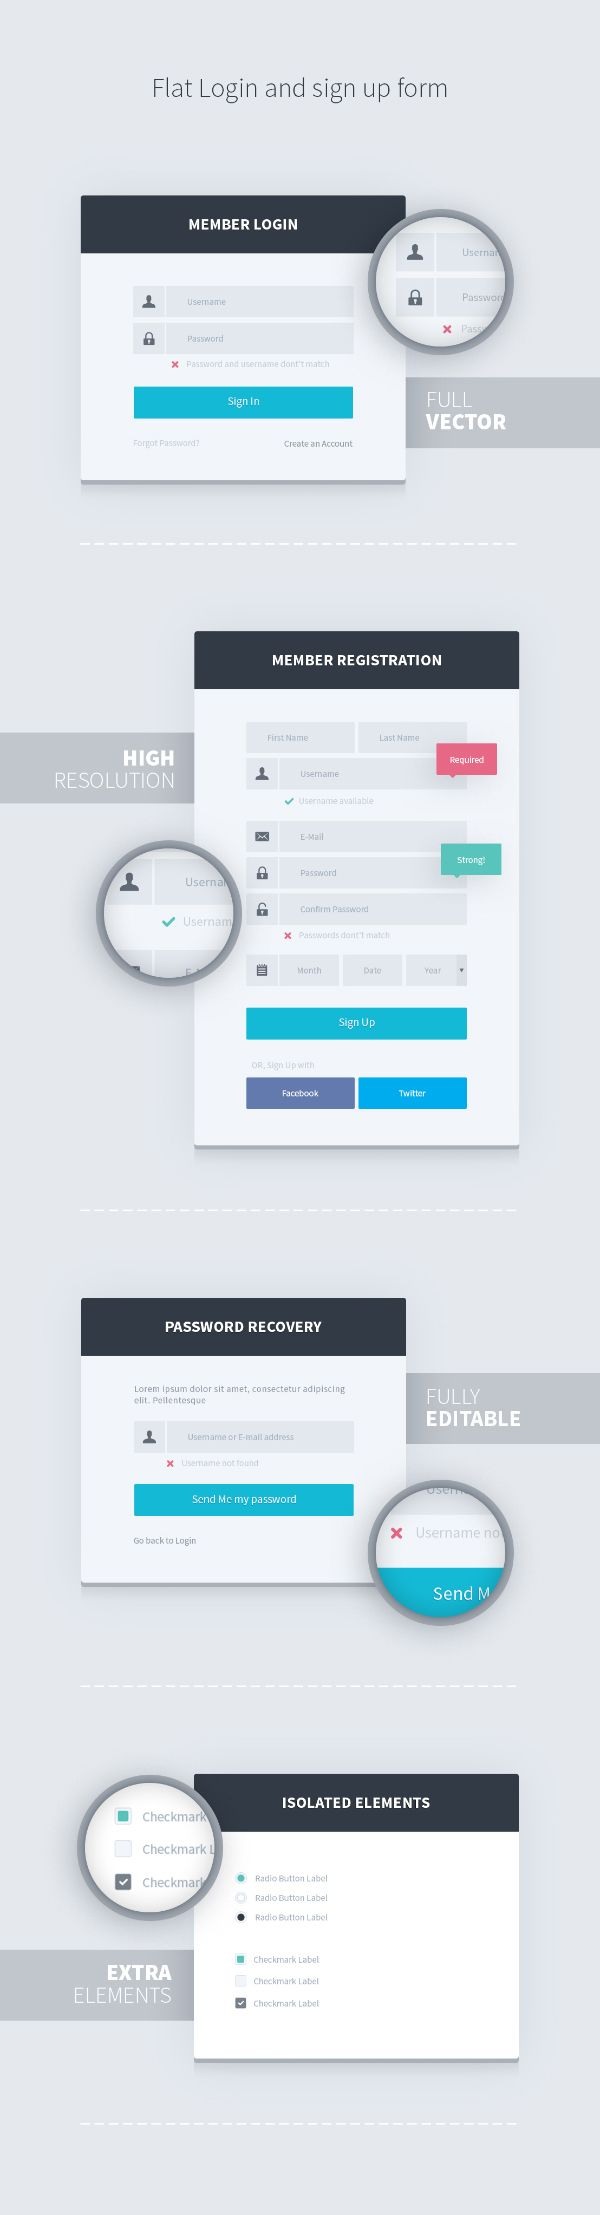 Flat Login and Sign Up Form is a PSD kit that includes three flat designed user forms: Login, Registration, and Password Recovery. Every element can be easily edited with Adobe Photoshop.Specifications:- High Resolution- Fully Editable- Easy to Use…